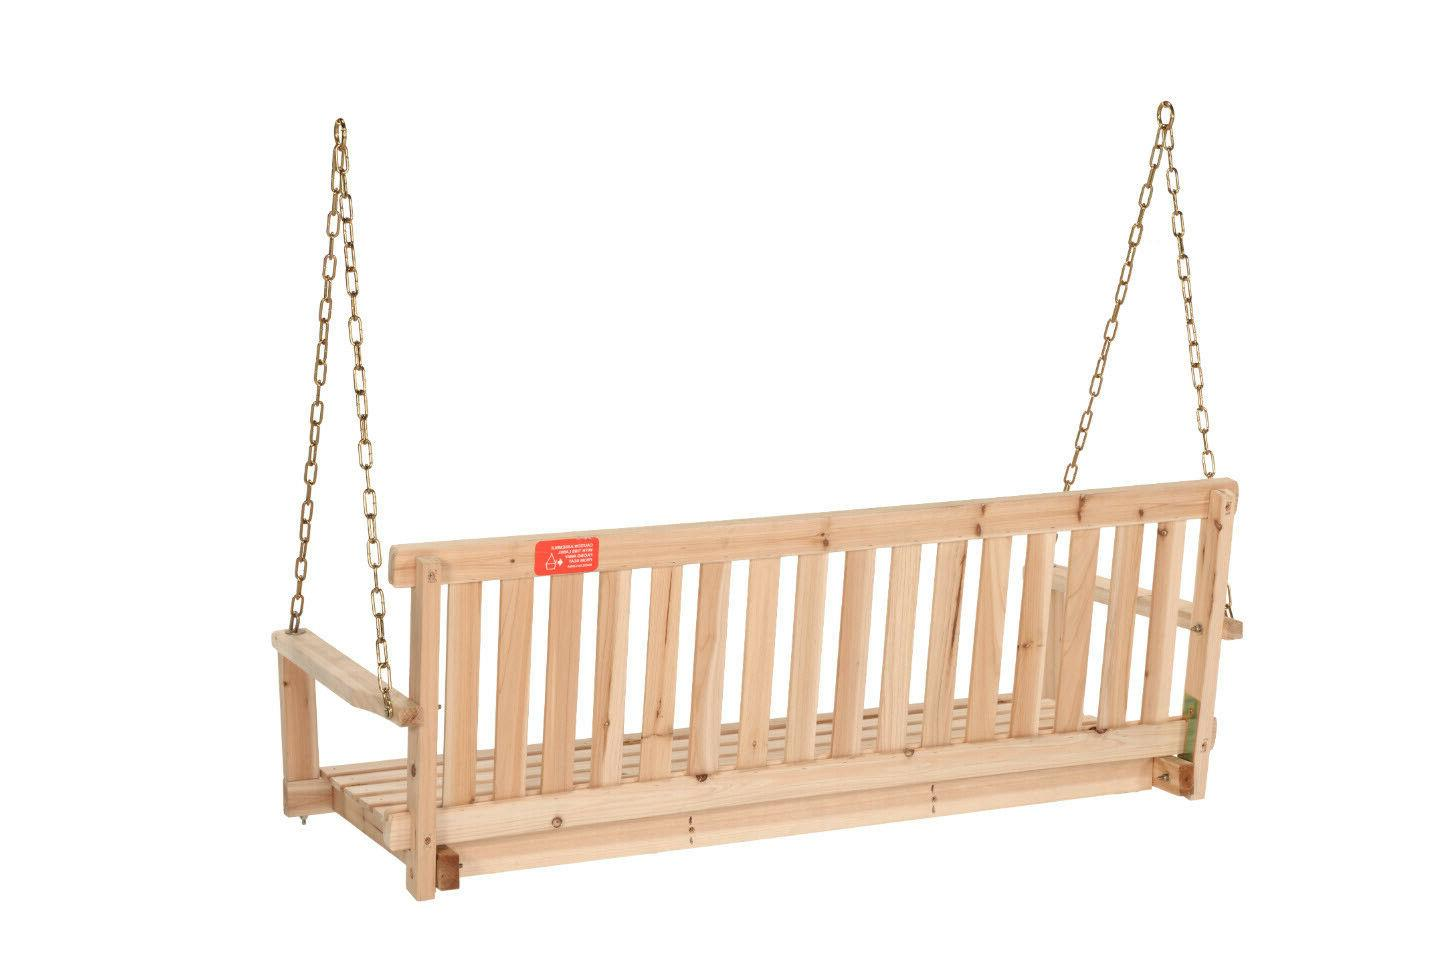 OUTDOOR PATIO Cypress Wood Frame